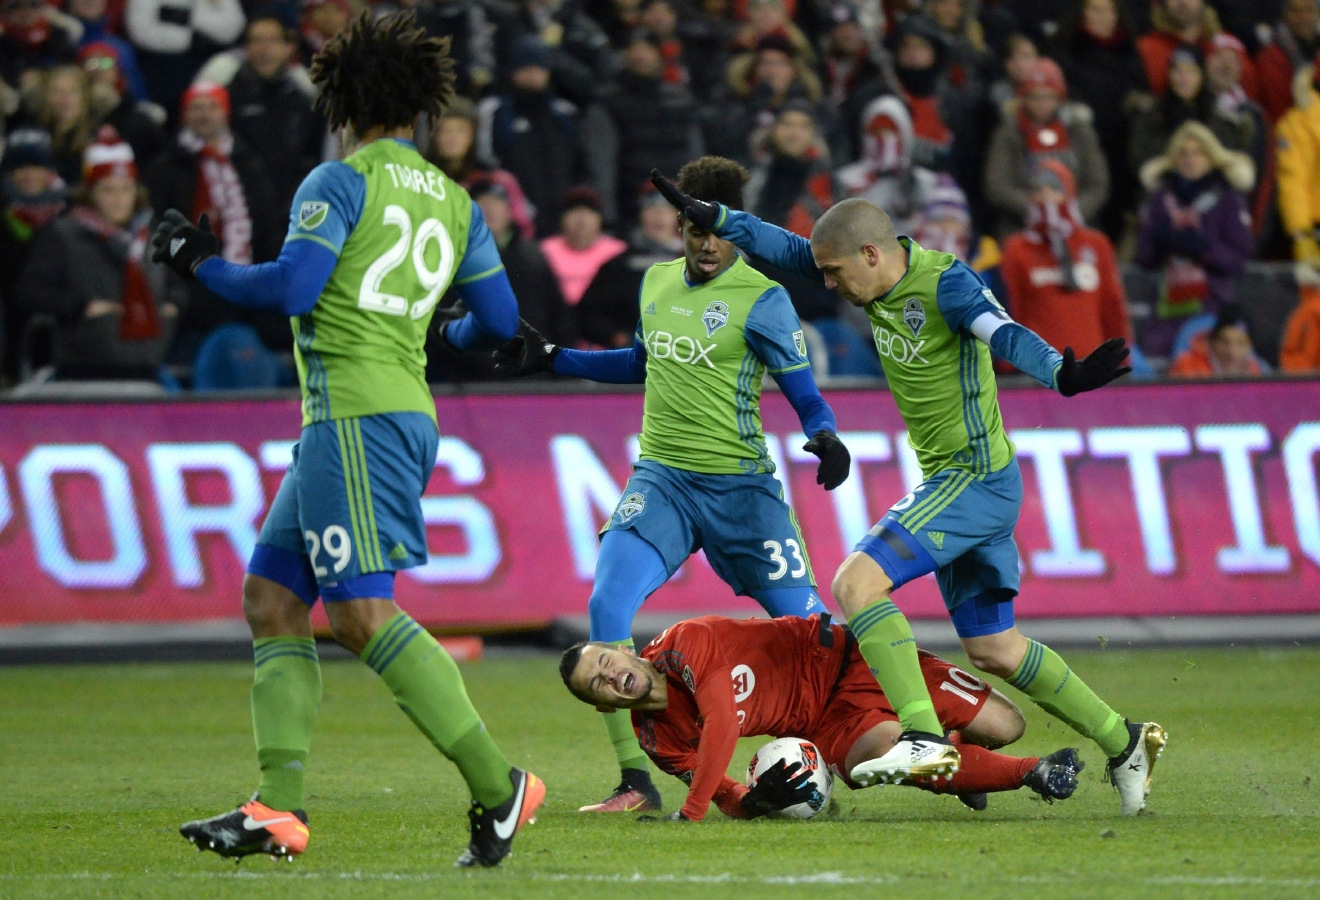 Seattle Sounders midfielder Osvaldo Alonso, right, trips Toronto FC forward Sebastian Giovinco as Sounders defender Roman Torres, left, and Joevin Jones, center, look on during first-half MLS Cup final soccer action in Toronto, Saturday, Dec. 10, 2016. (Nathan Denette/The Canadian Press via AP)